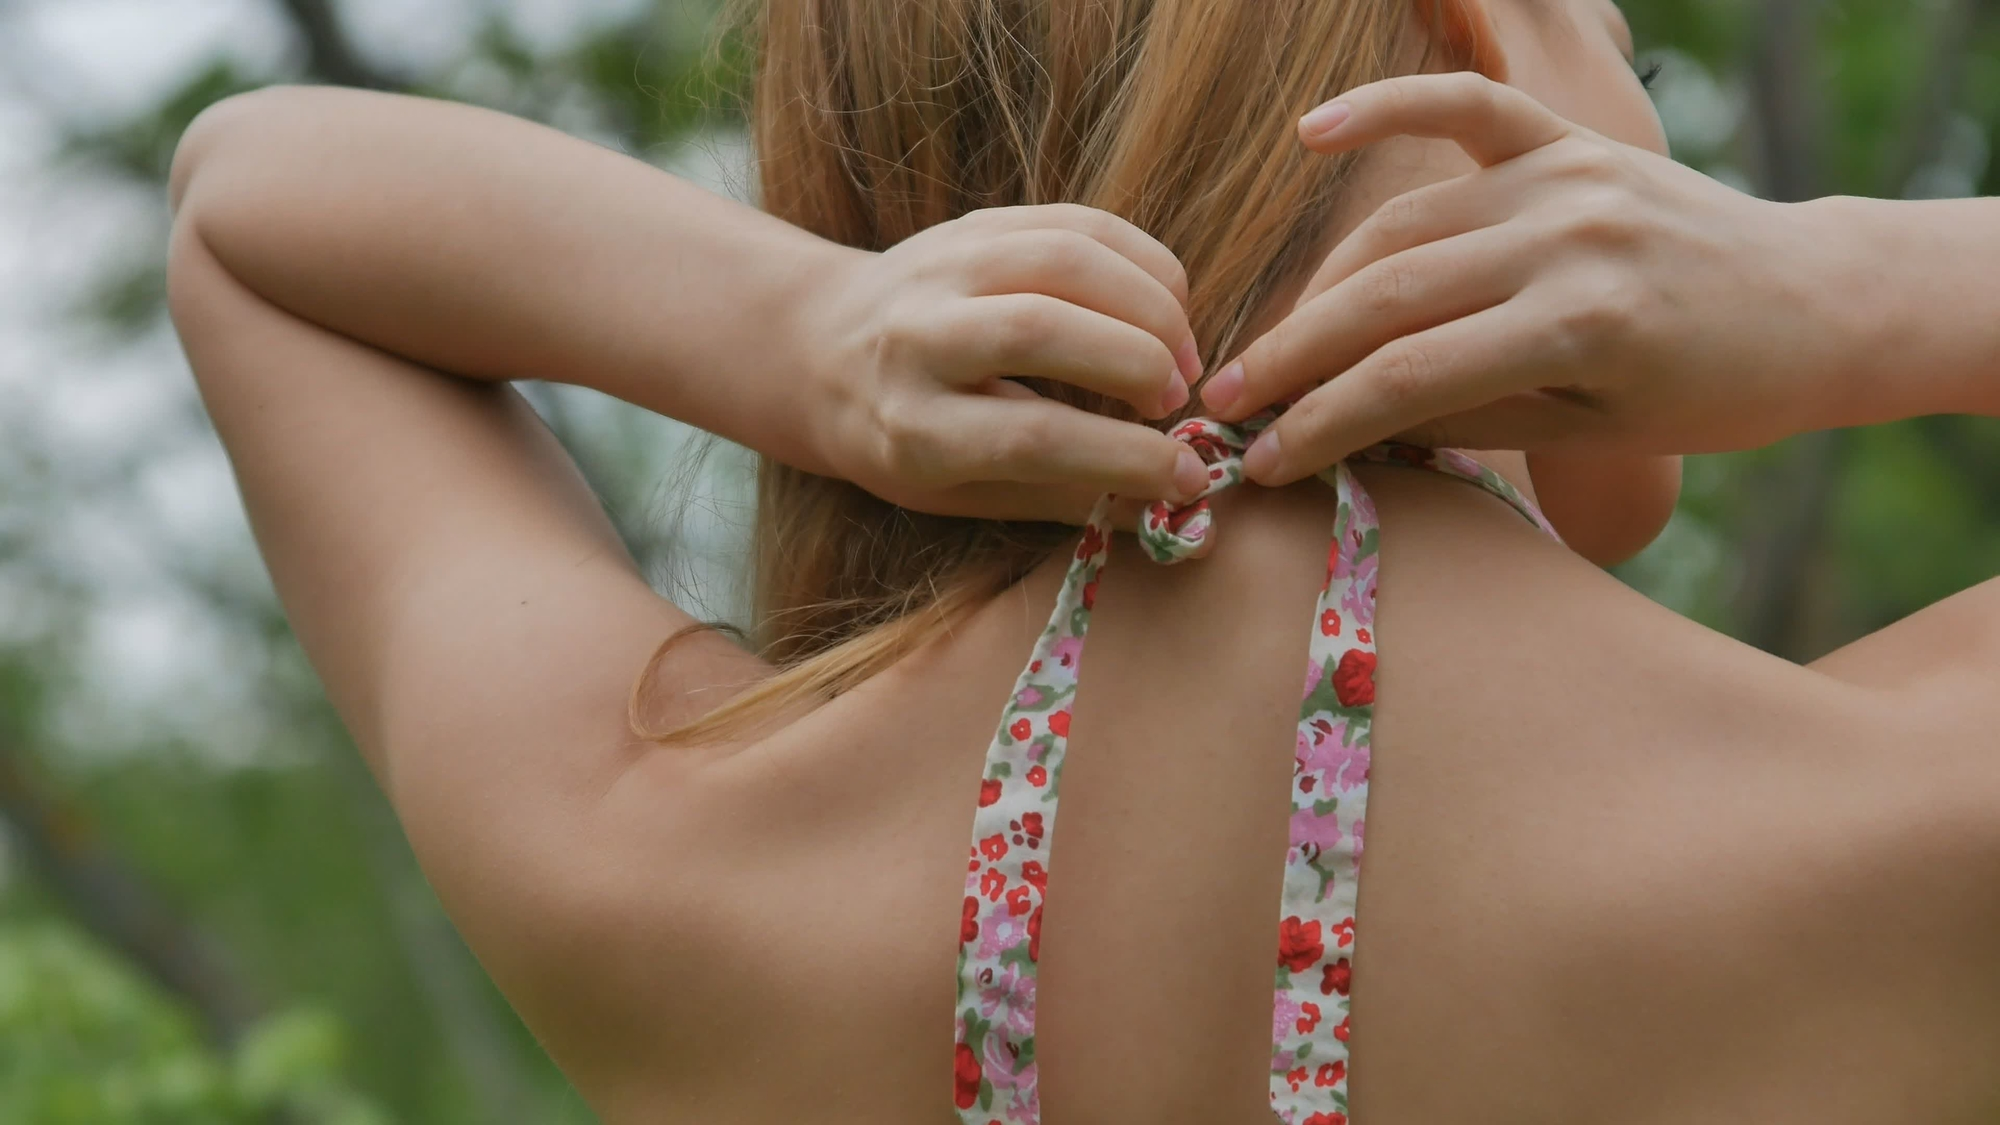 girl tying braid for clothes in the neck close up rear view